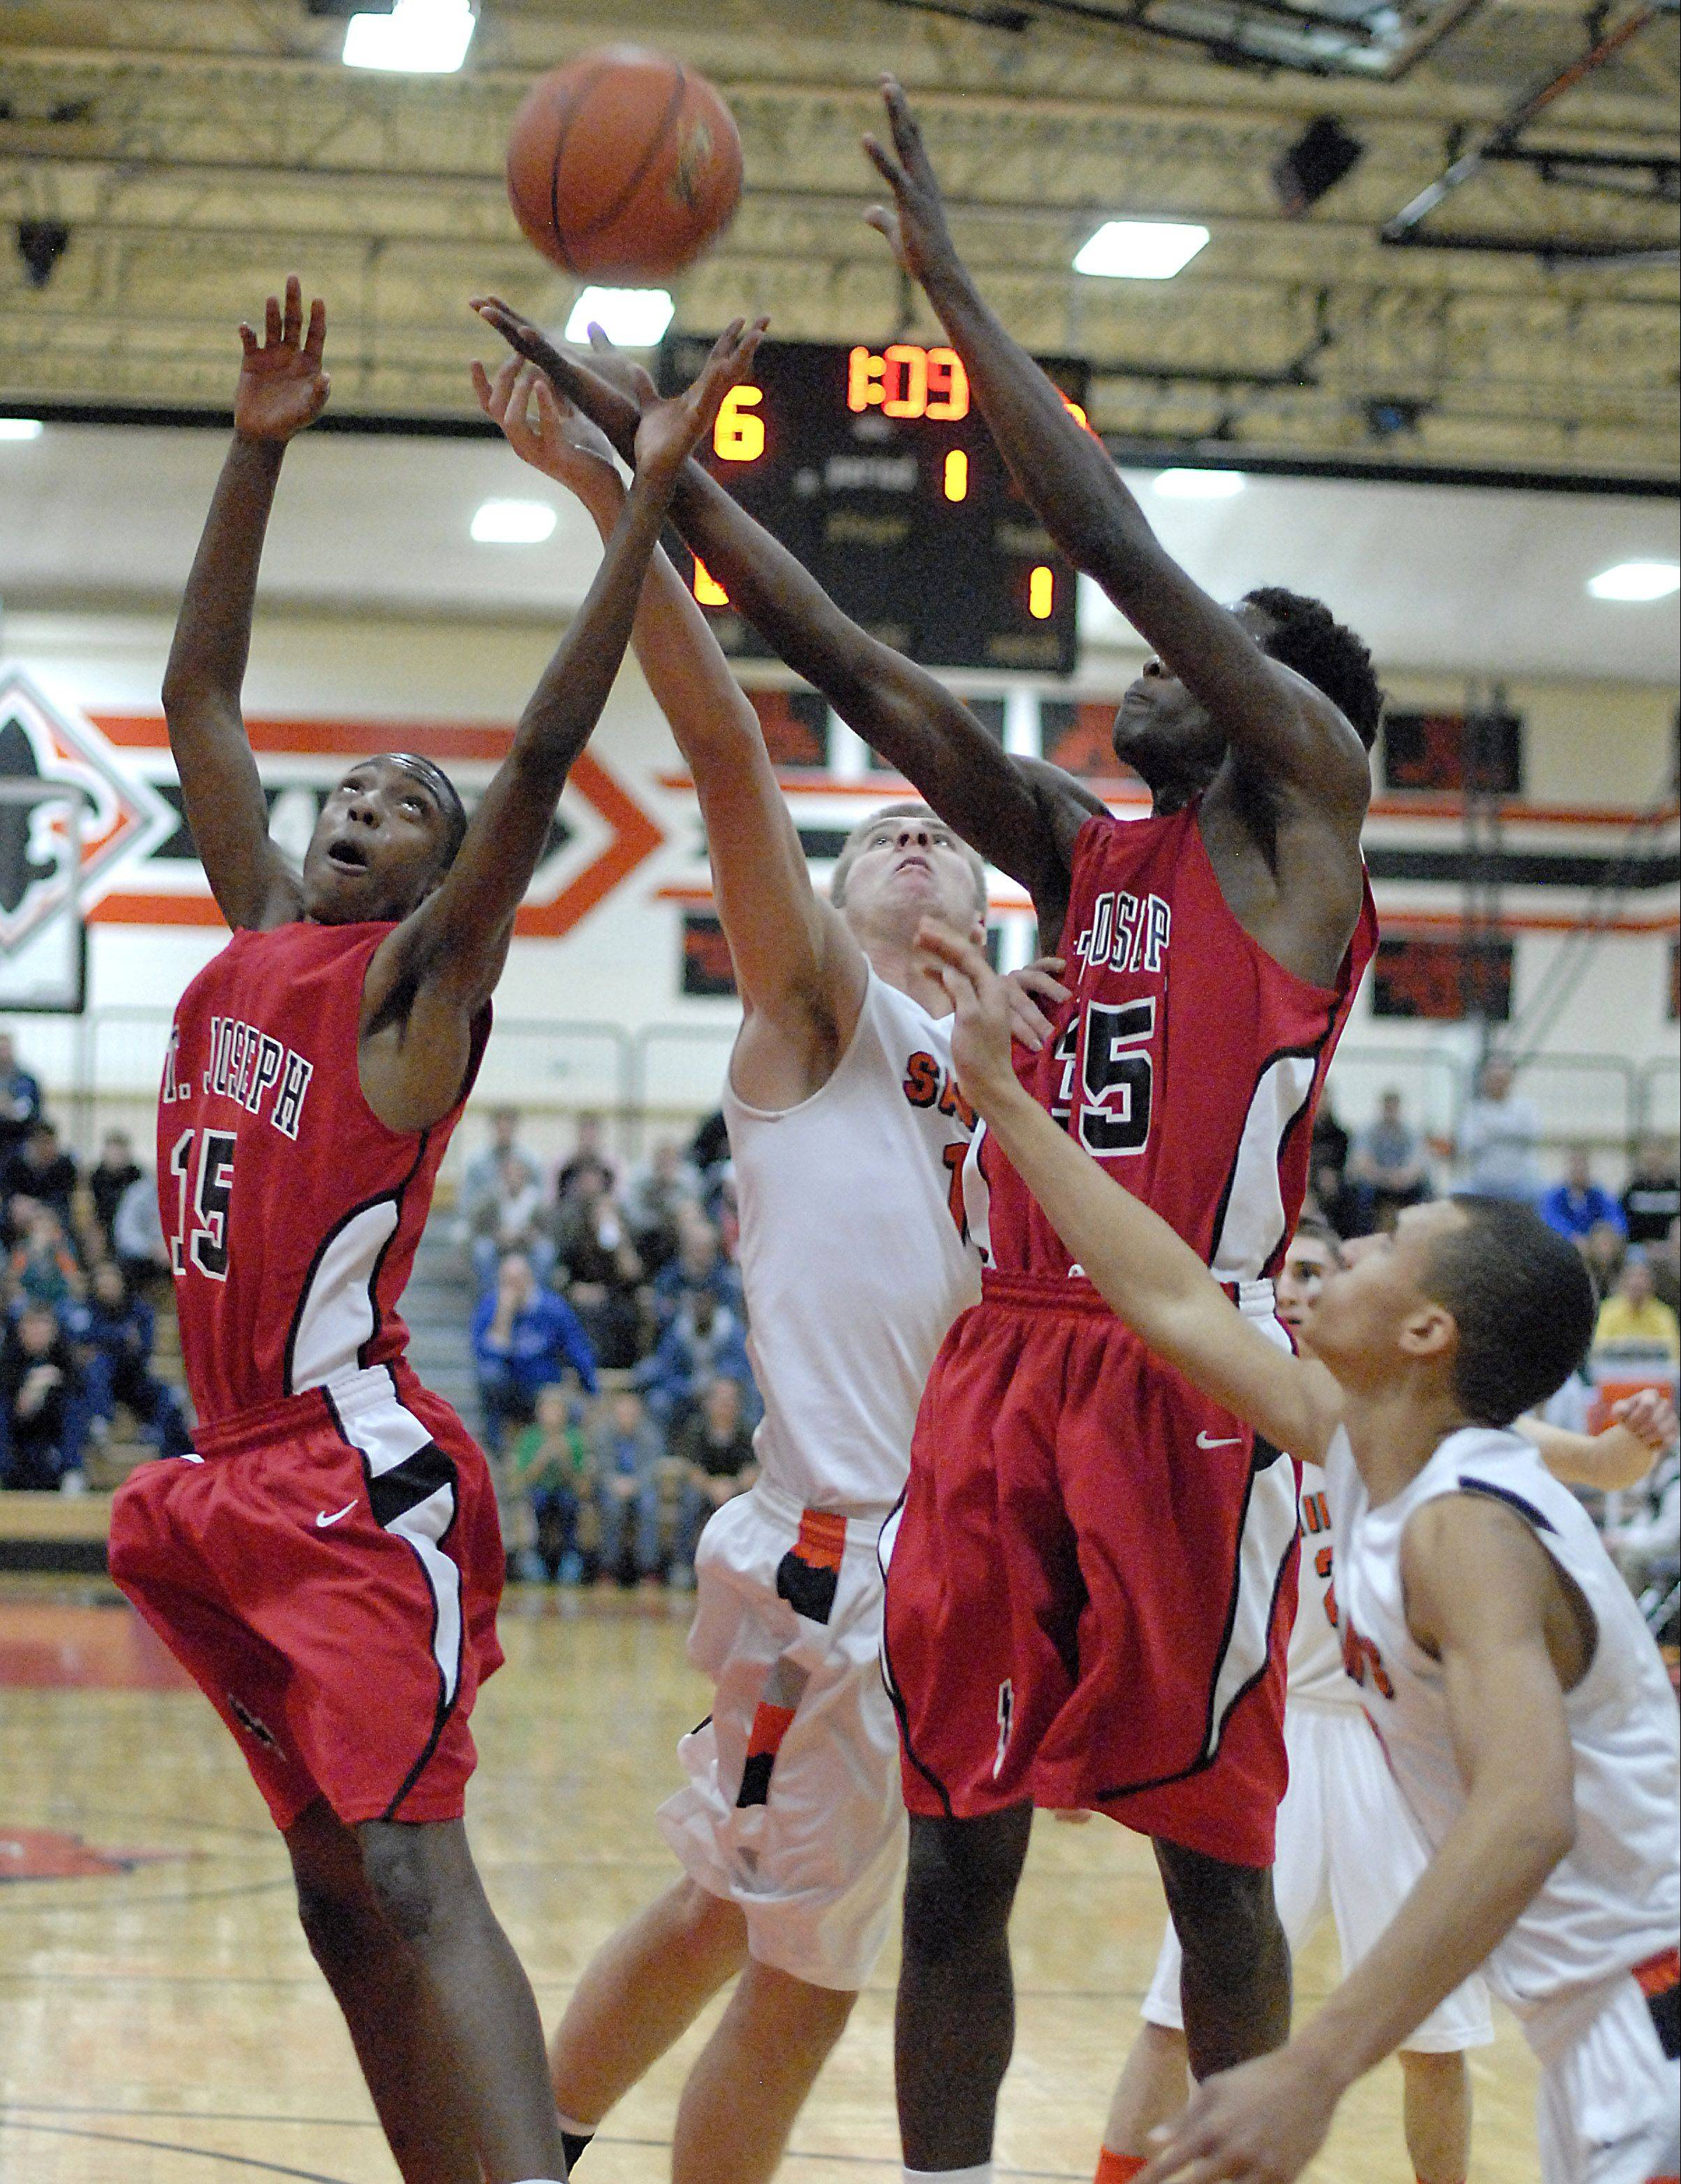 St. Charles East's Ben Skoog is wedged between St. Joseph's Loren Horton and Karriem Simmons as they fight for a rebound in the first quarter on Friday.